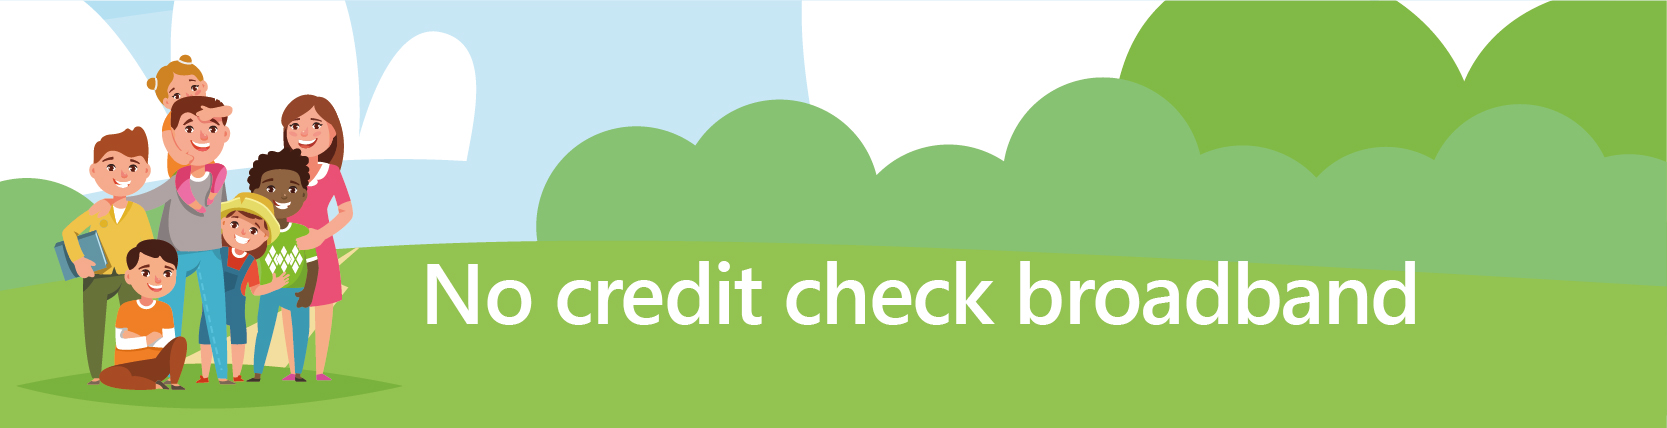 no credit check broadband